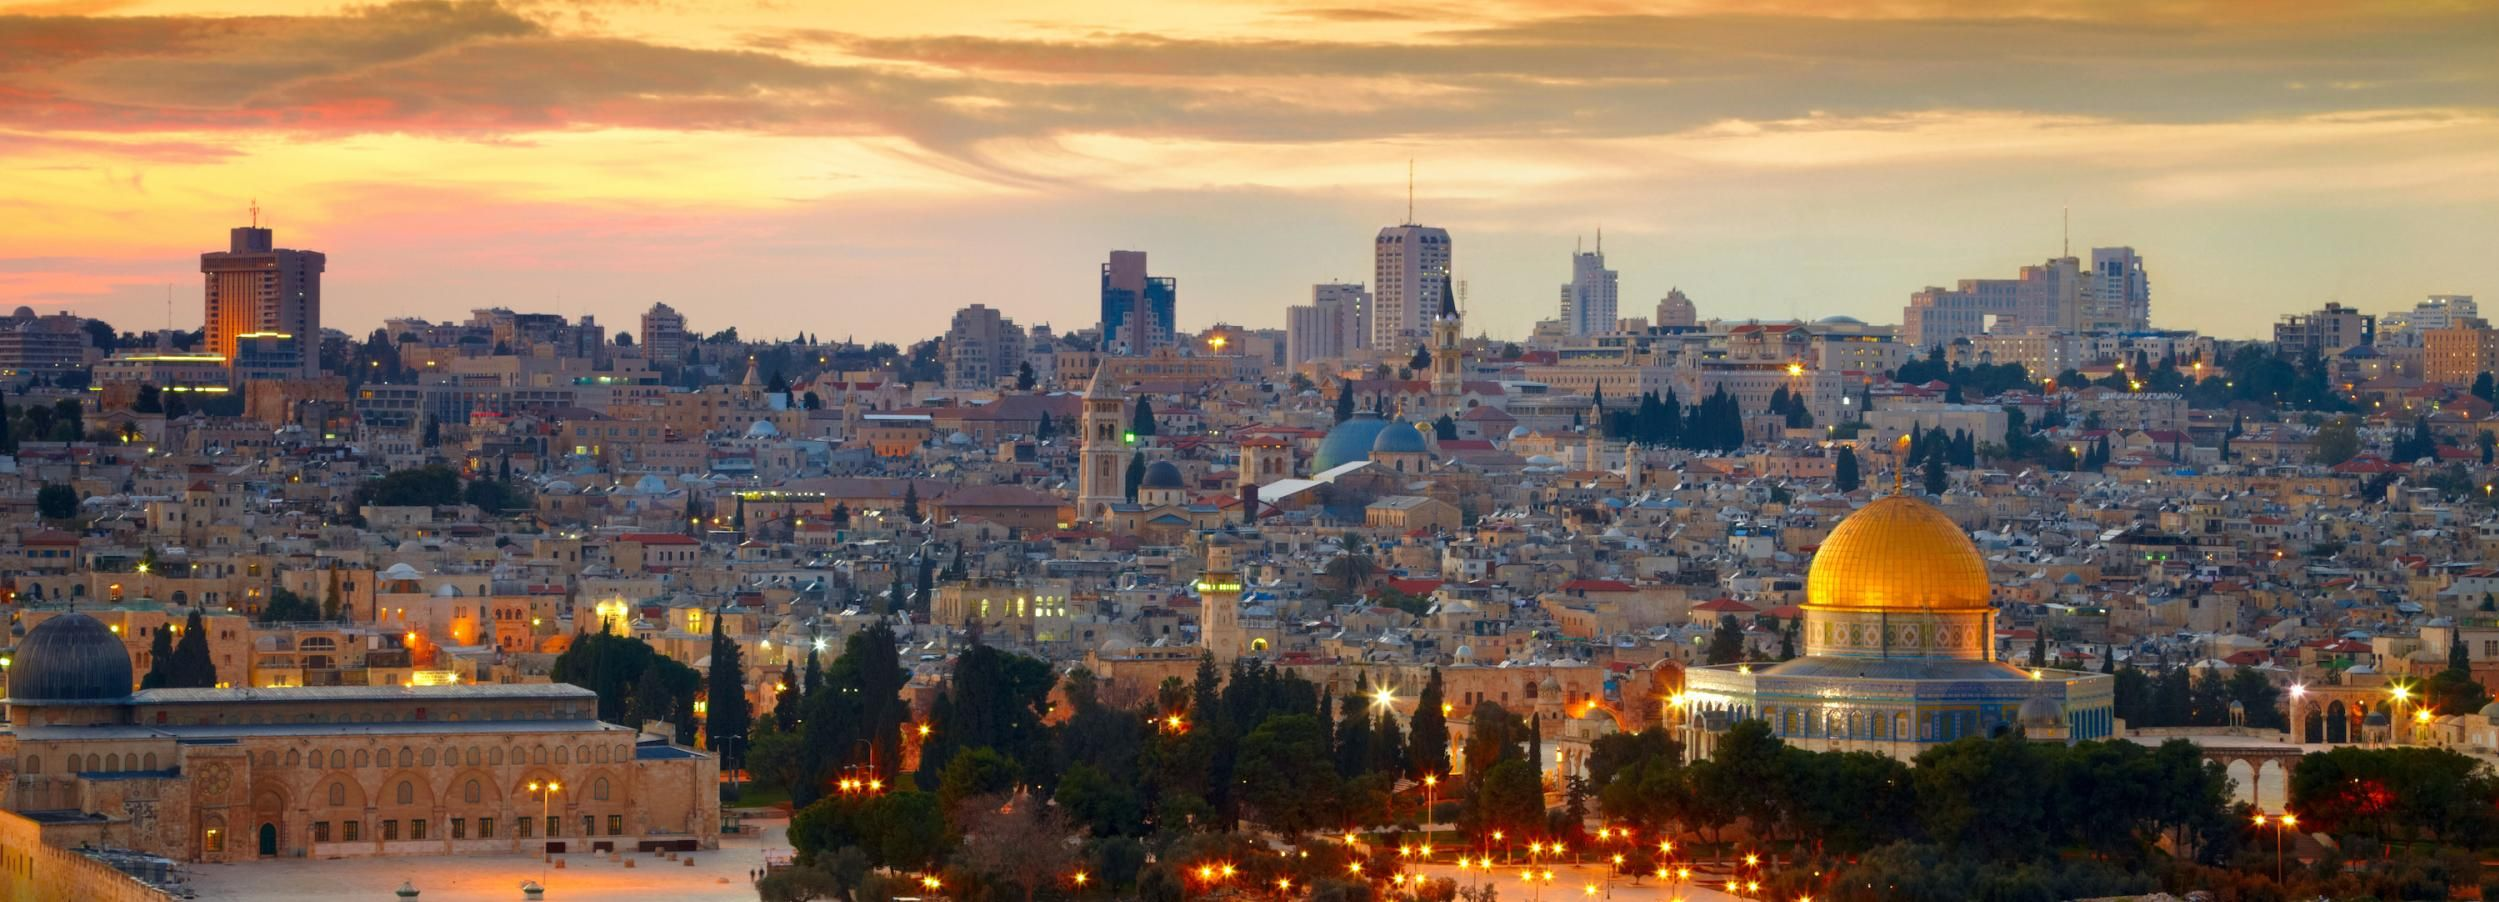 Jerusalem, Dead Sea, and Bethlehem Tour